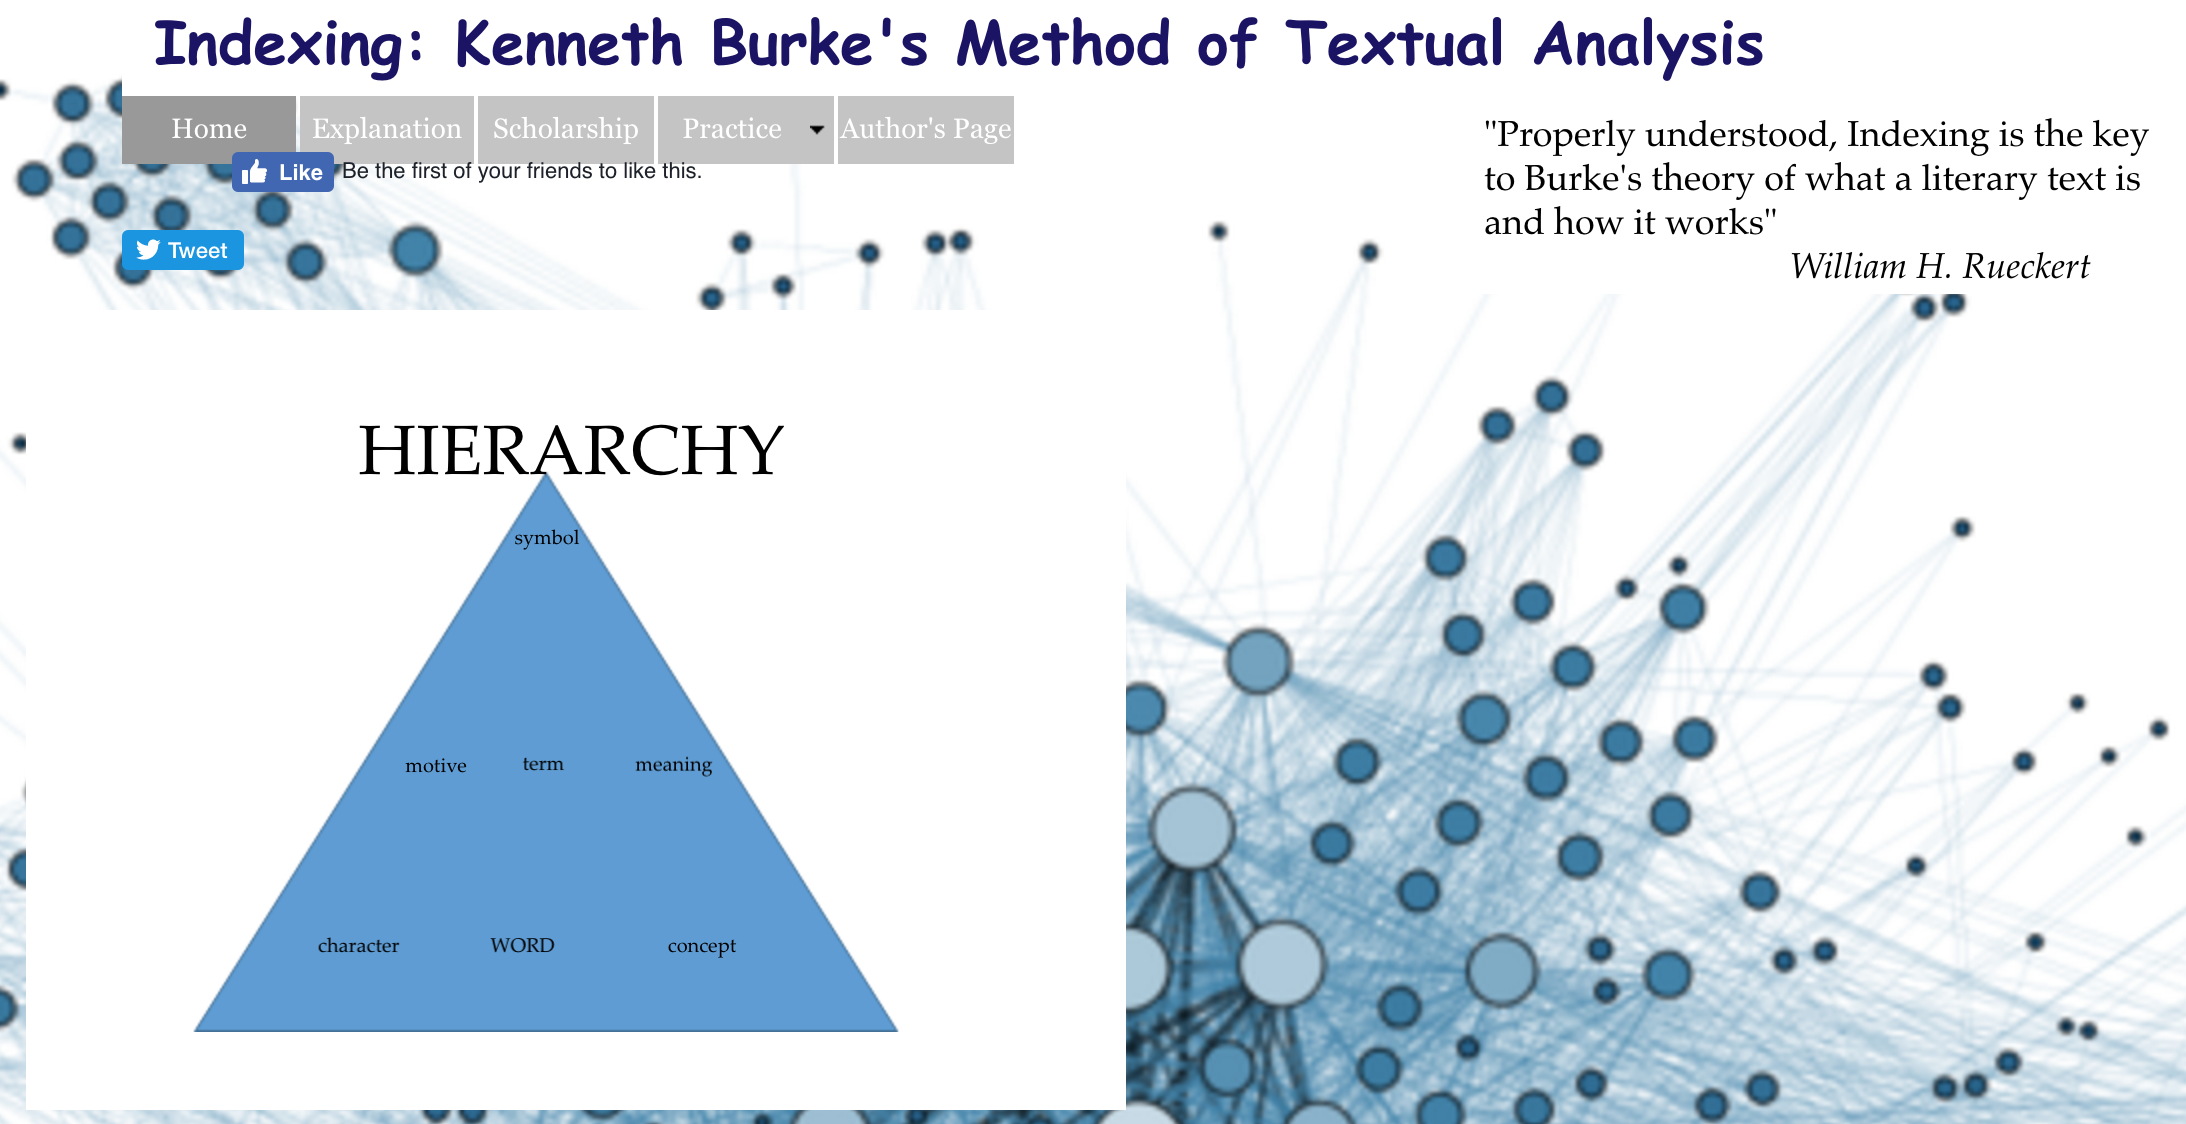 analysis of kenneth burkes literature as Home » identification as a key term in kenneth burke's rhetorical theory  kenneth burke selects identification as the key term  for the analysis of.